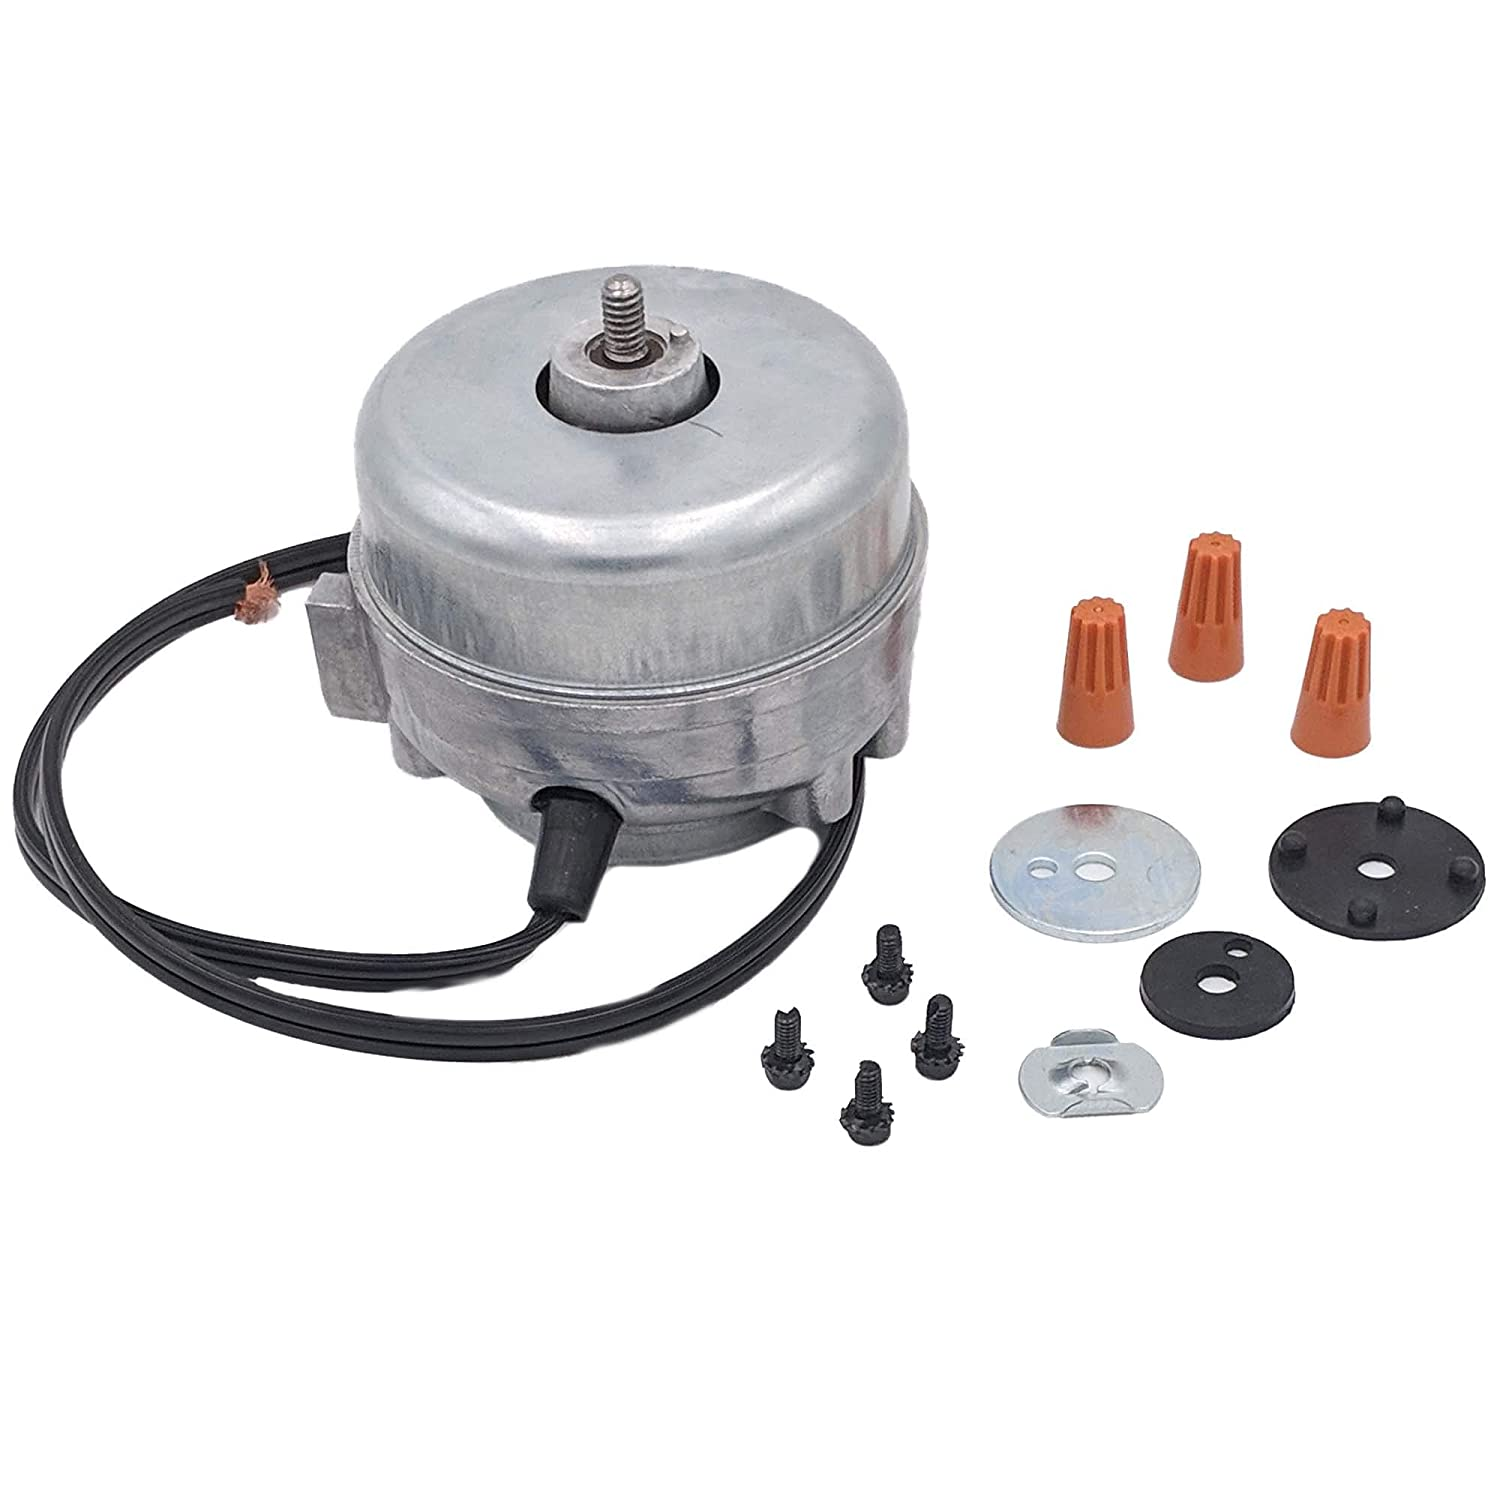 Supplying Demand 833697 Refrigerator Condenser Fan Motor Kit